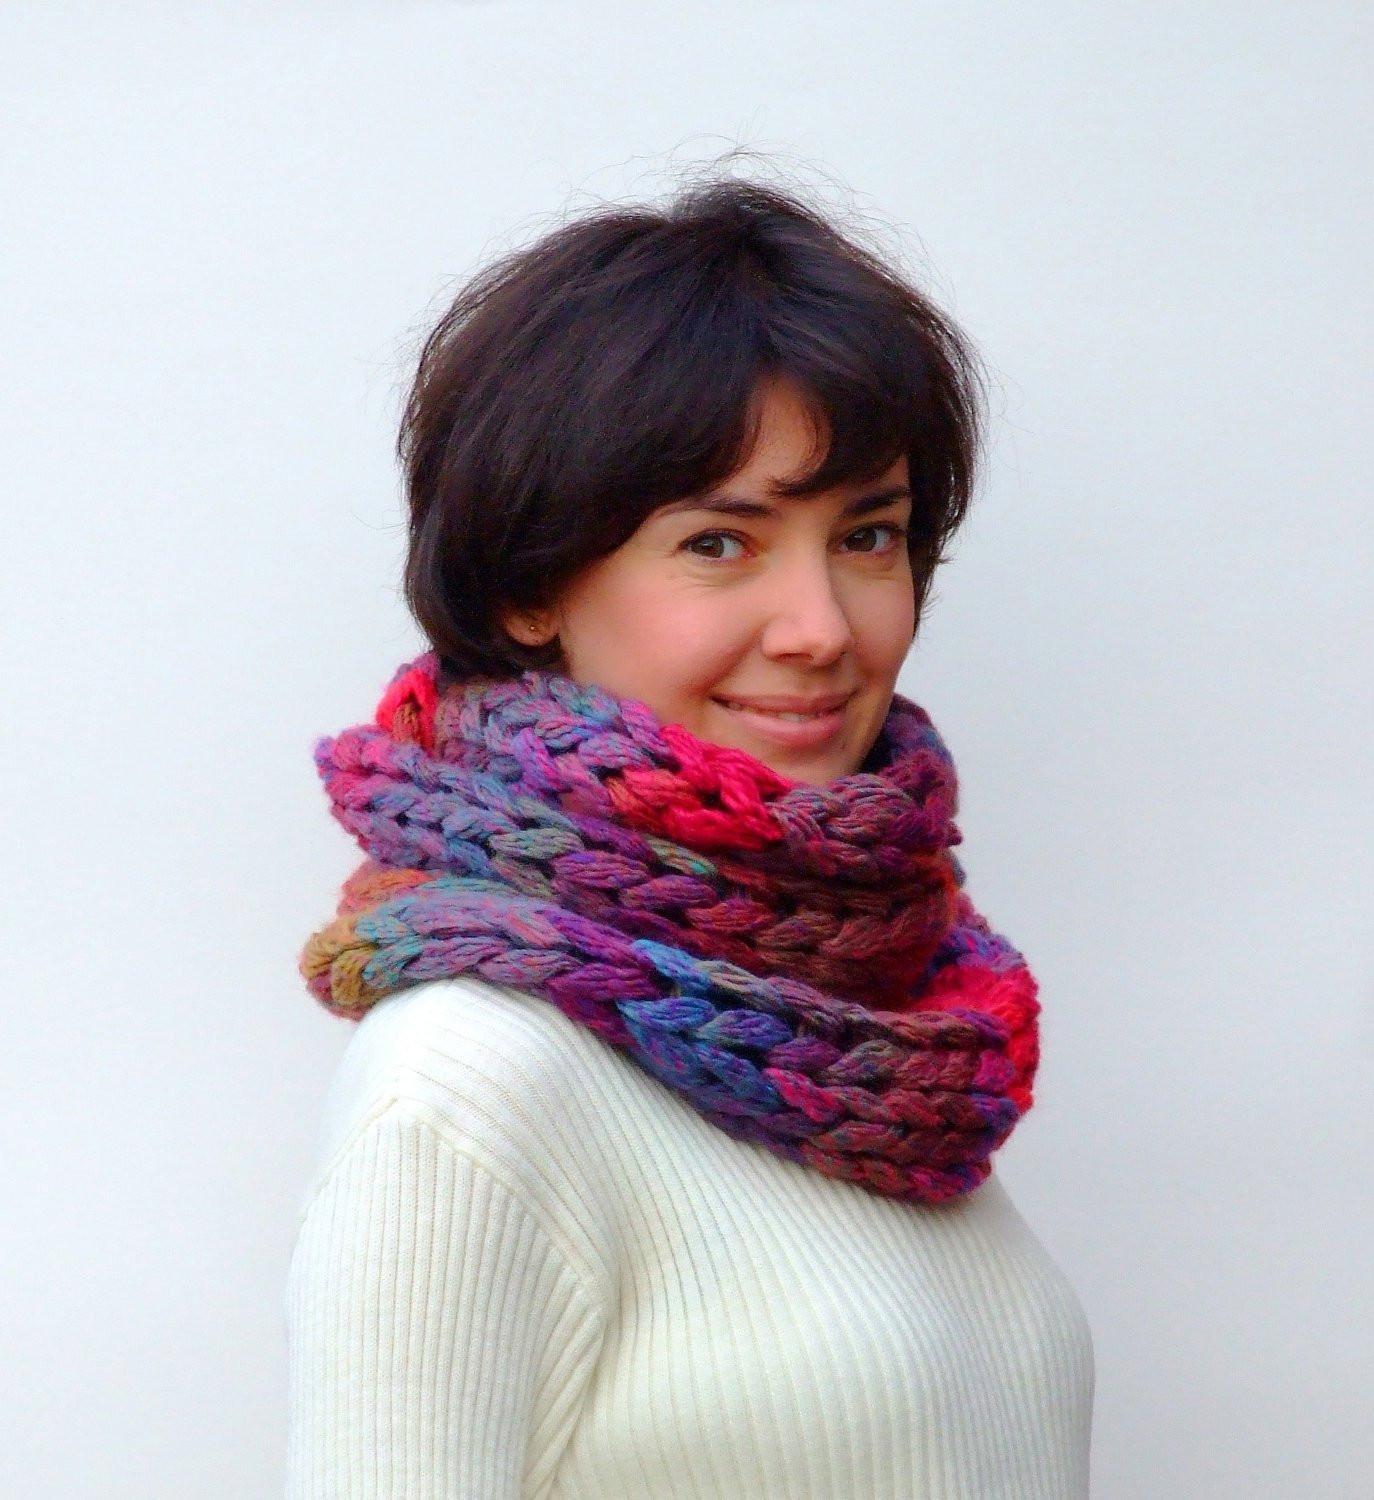 Knit Infinity Scarf Luxury Chunky Infinity Knit Scarf Cowl Of Wonderful 49 Photos Knit Infinity Scarf